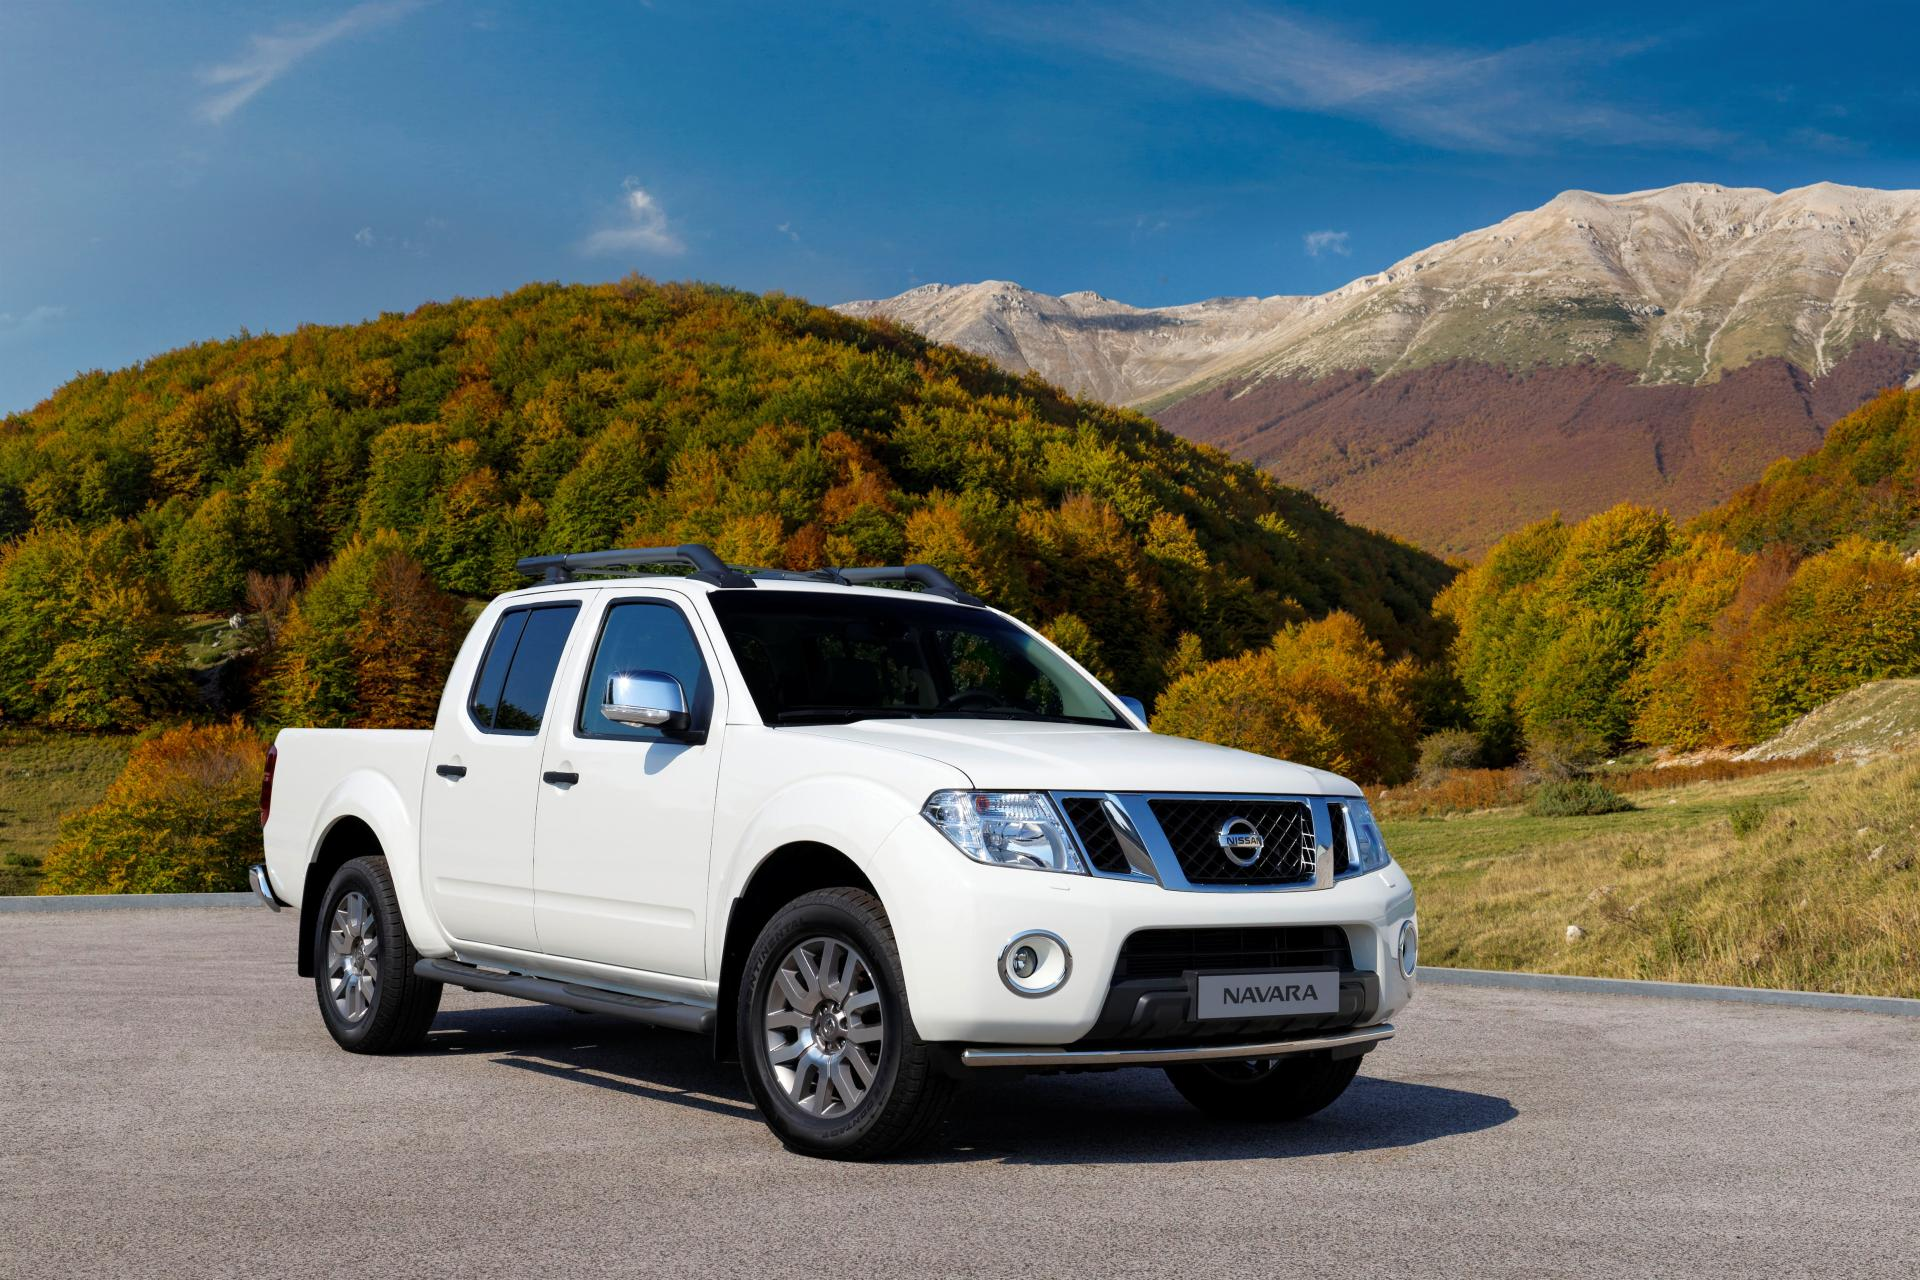 2014 nissan navara. Black Bedroom Furniture Sets. Home Design Ideas